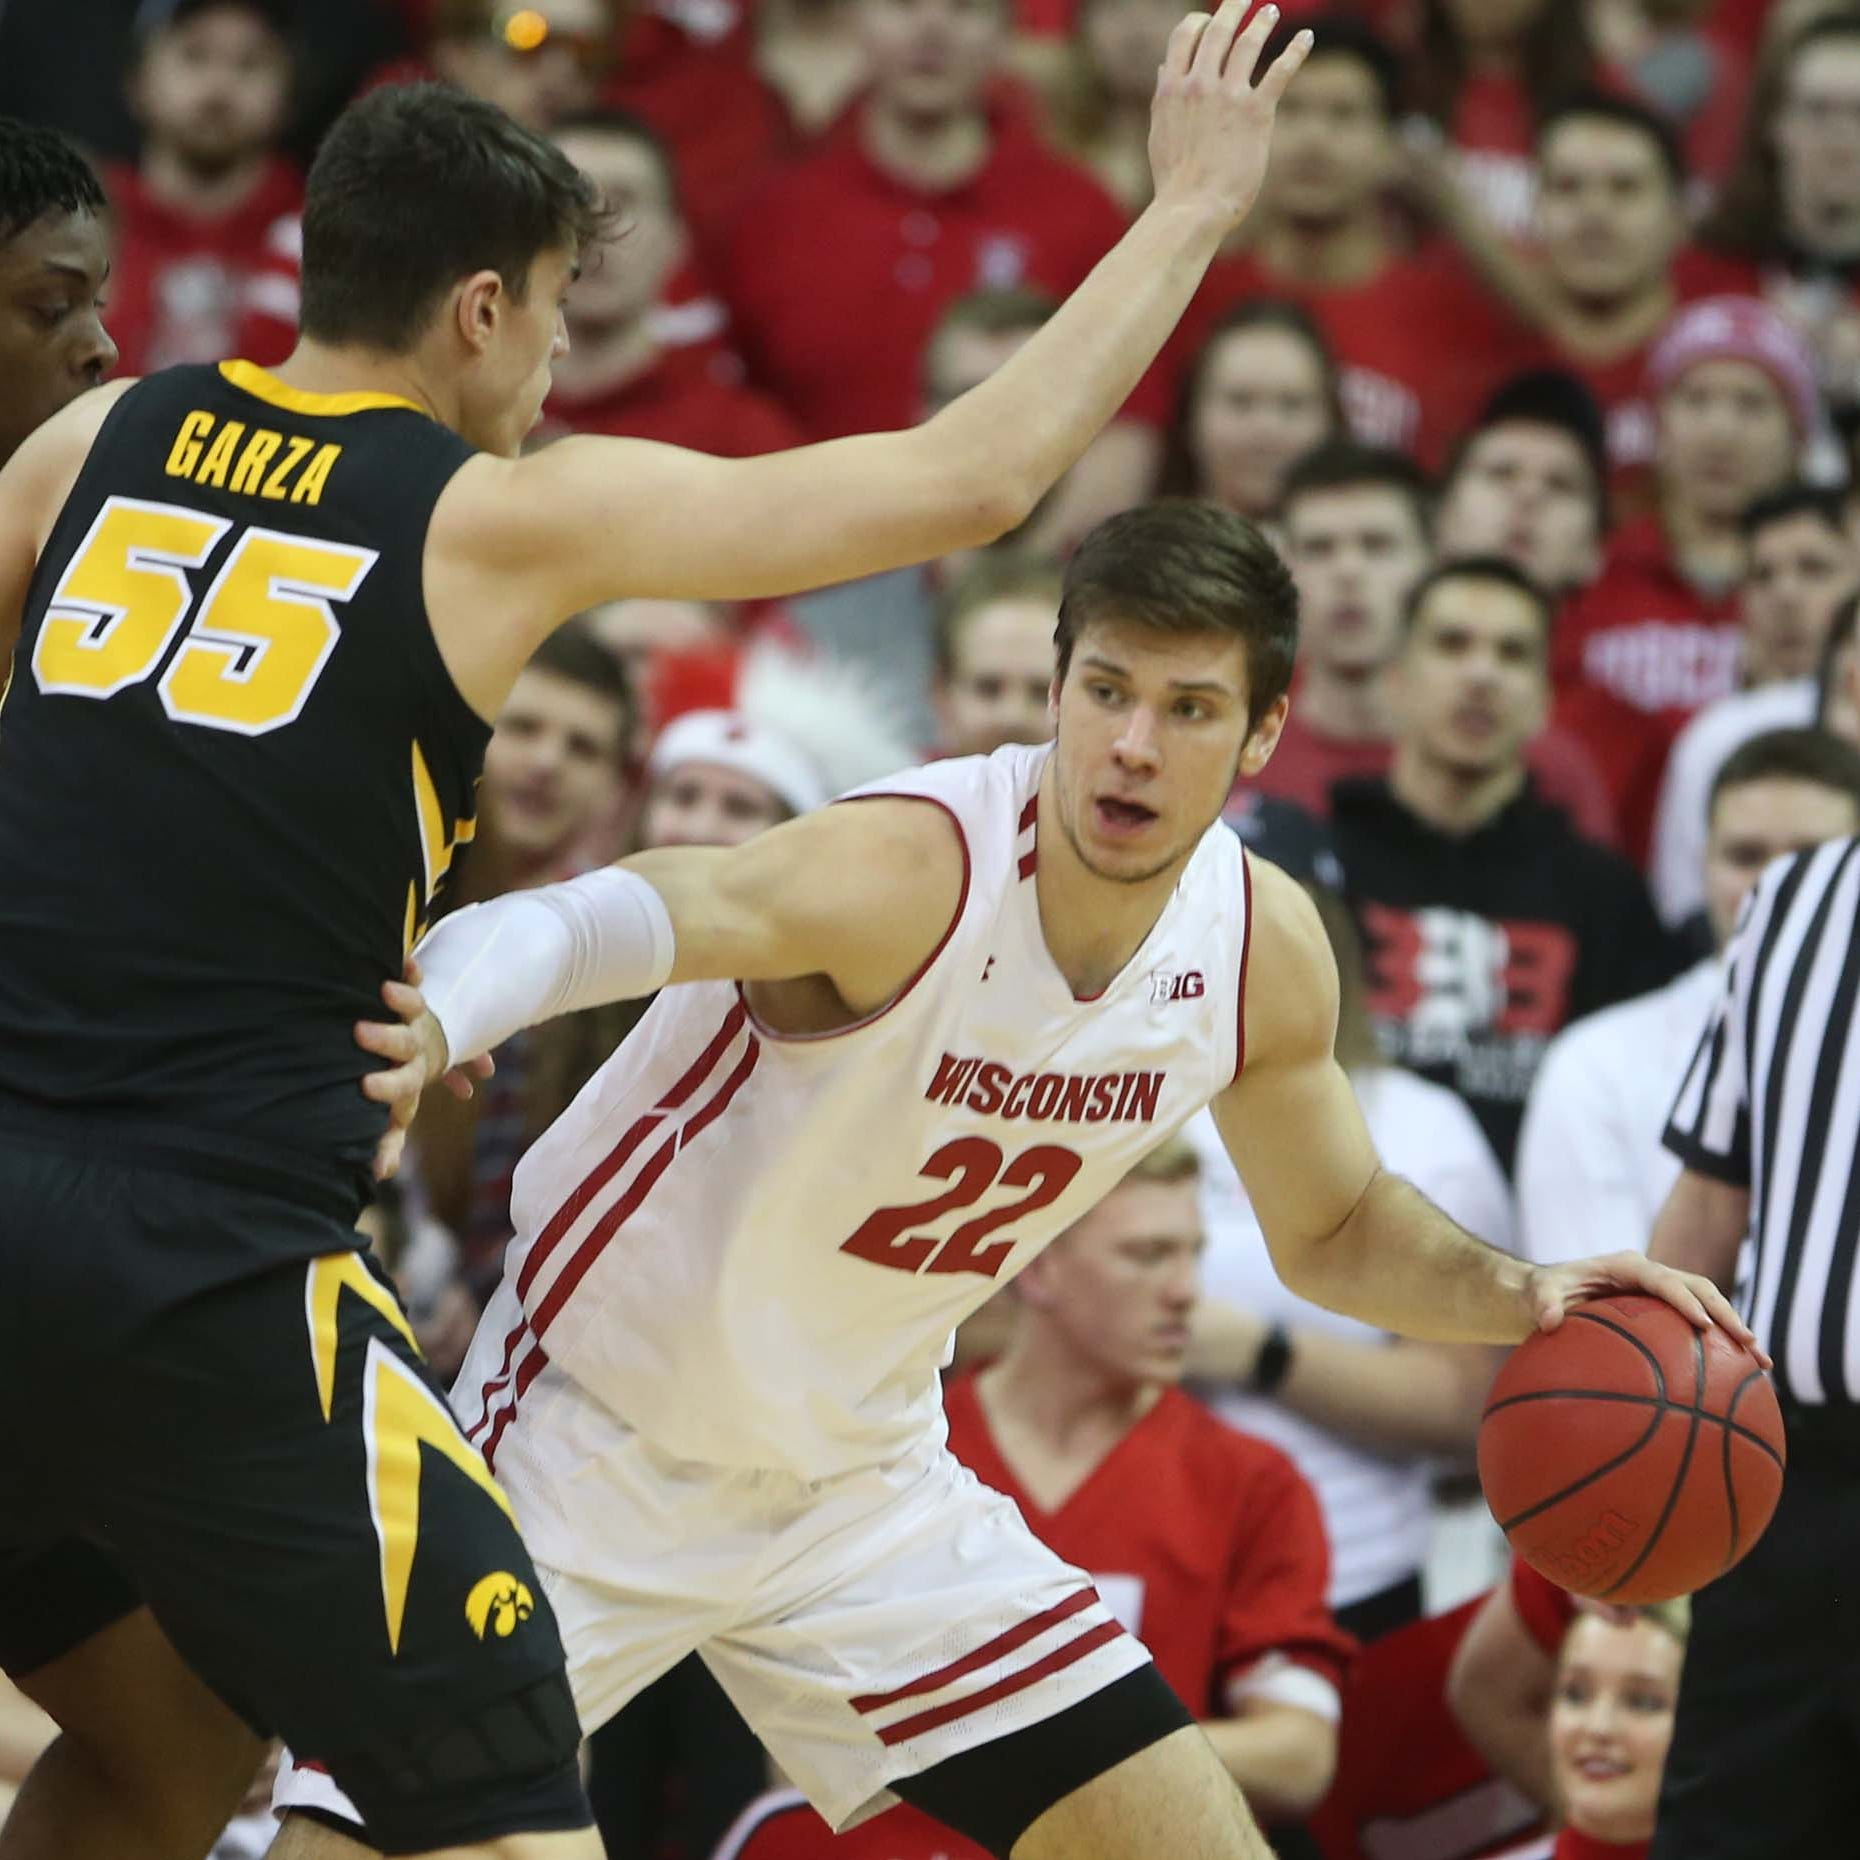 UW 65, Iowa 45: Happ's strong second-half surge helps the Badgers sweep their rivals